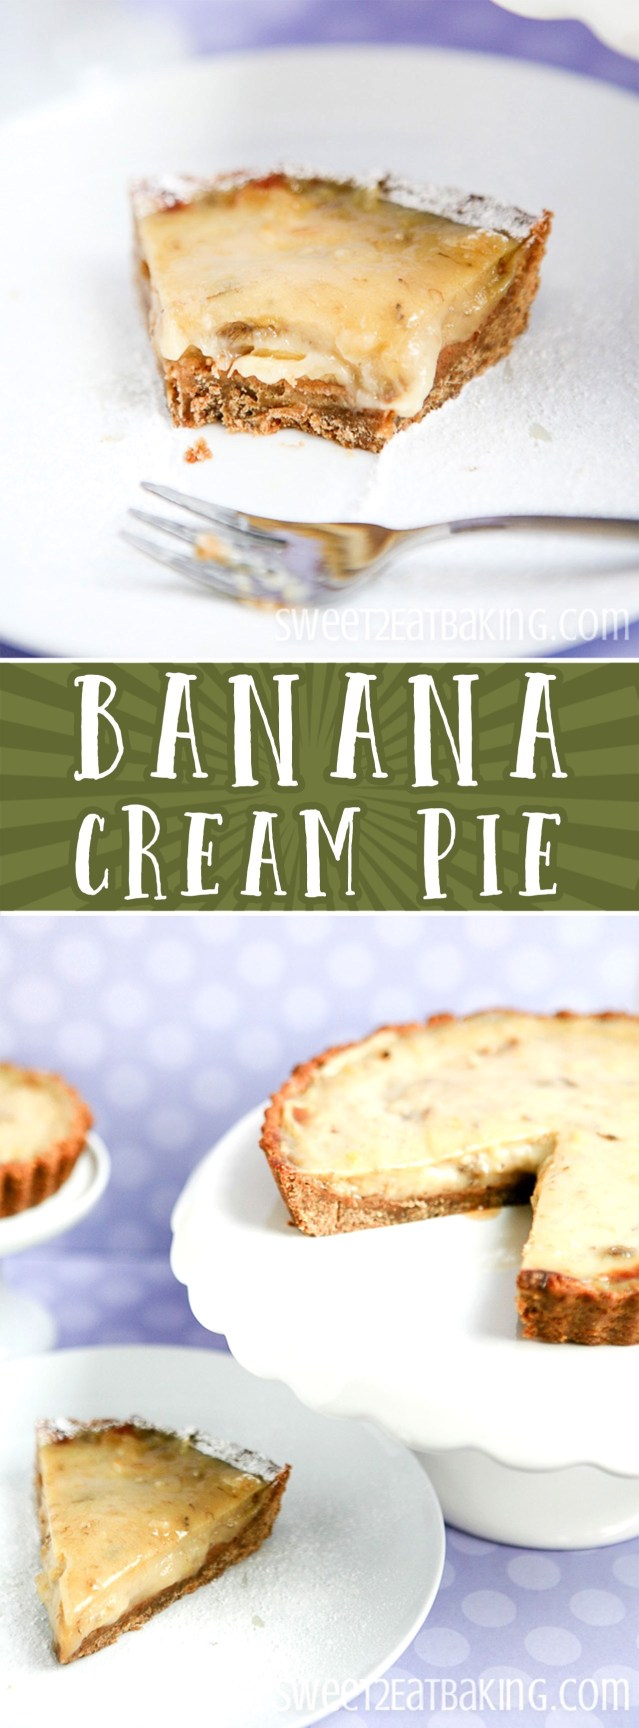 Banana Cream Pie Recipe with a Banana Cookie Crumb Crust by Sweet2EatBaking.com | You'll go bananas for this all American Banana Cream Pie Recipe with an added banana flavoured cookie crumb crust! A thick and heavy topping of rich and creamy banana flavoured custard, finished off with a topping of sliced bananas.